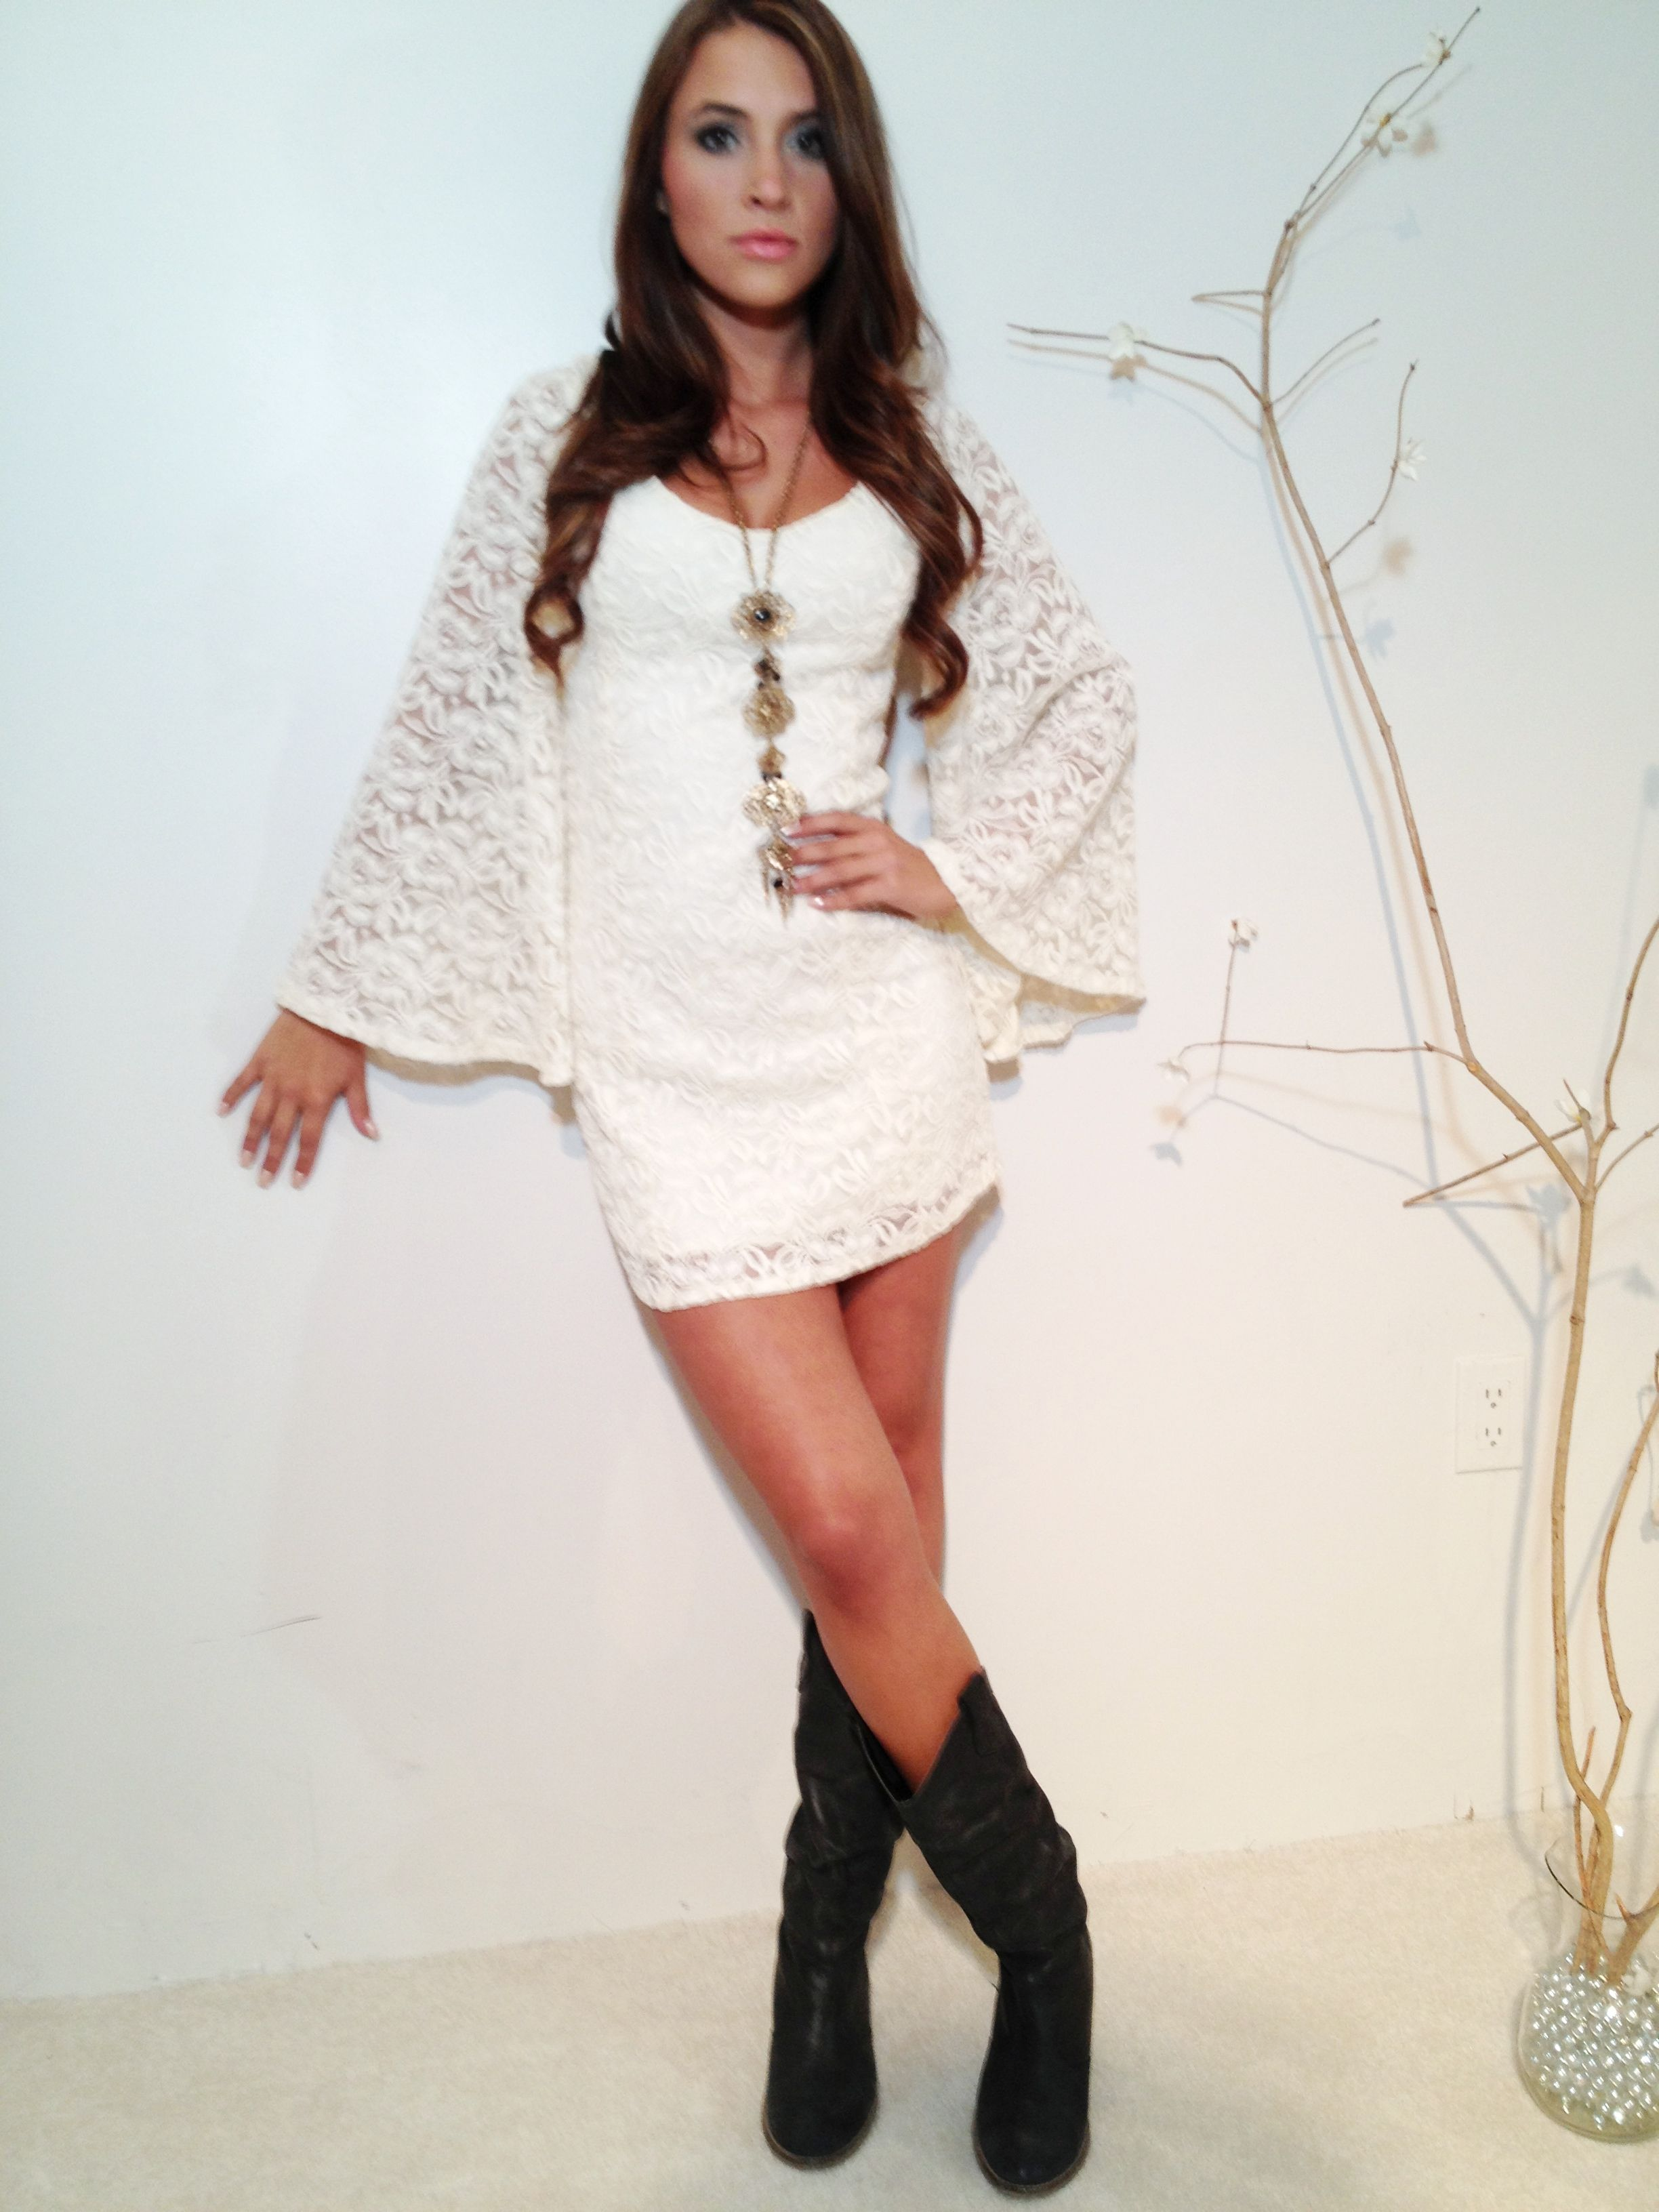 White lace dress with cowboy boots a fun twist for an outdoor